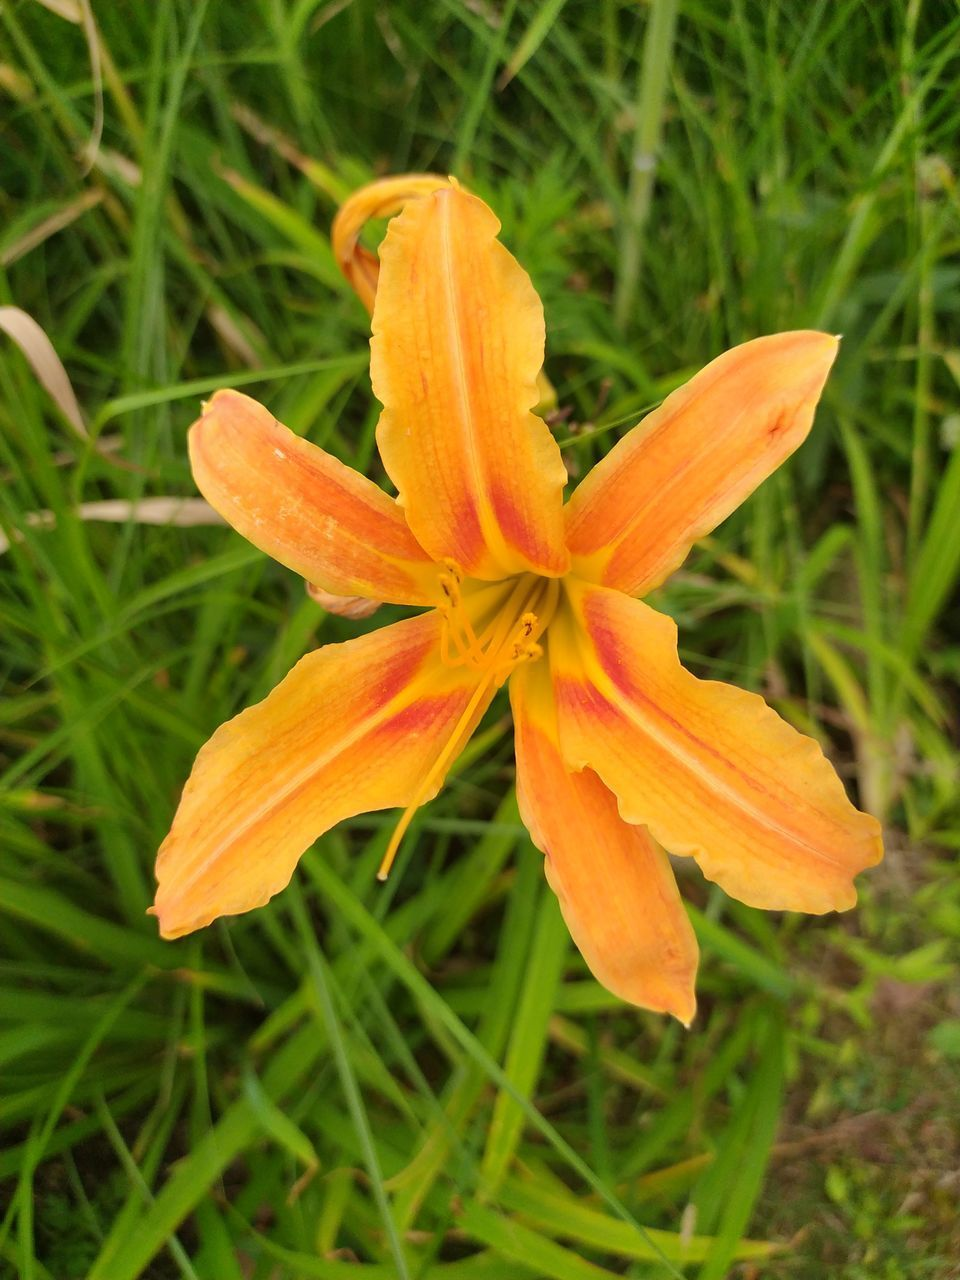 CLOSE-UP OF ORANGE DAY LILY ON PLANT